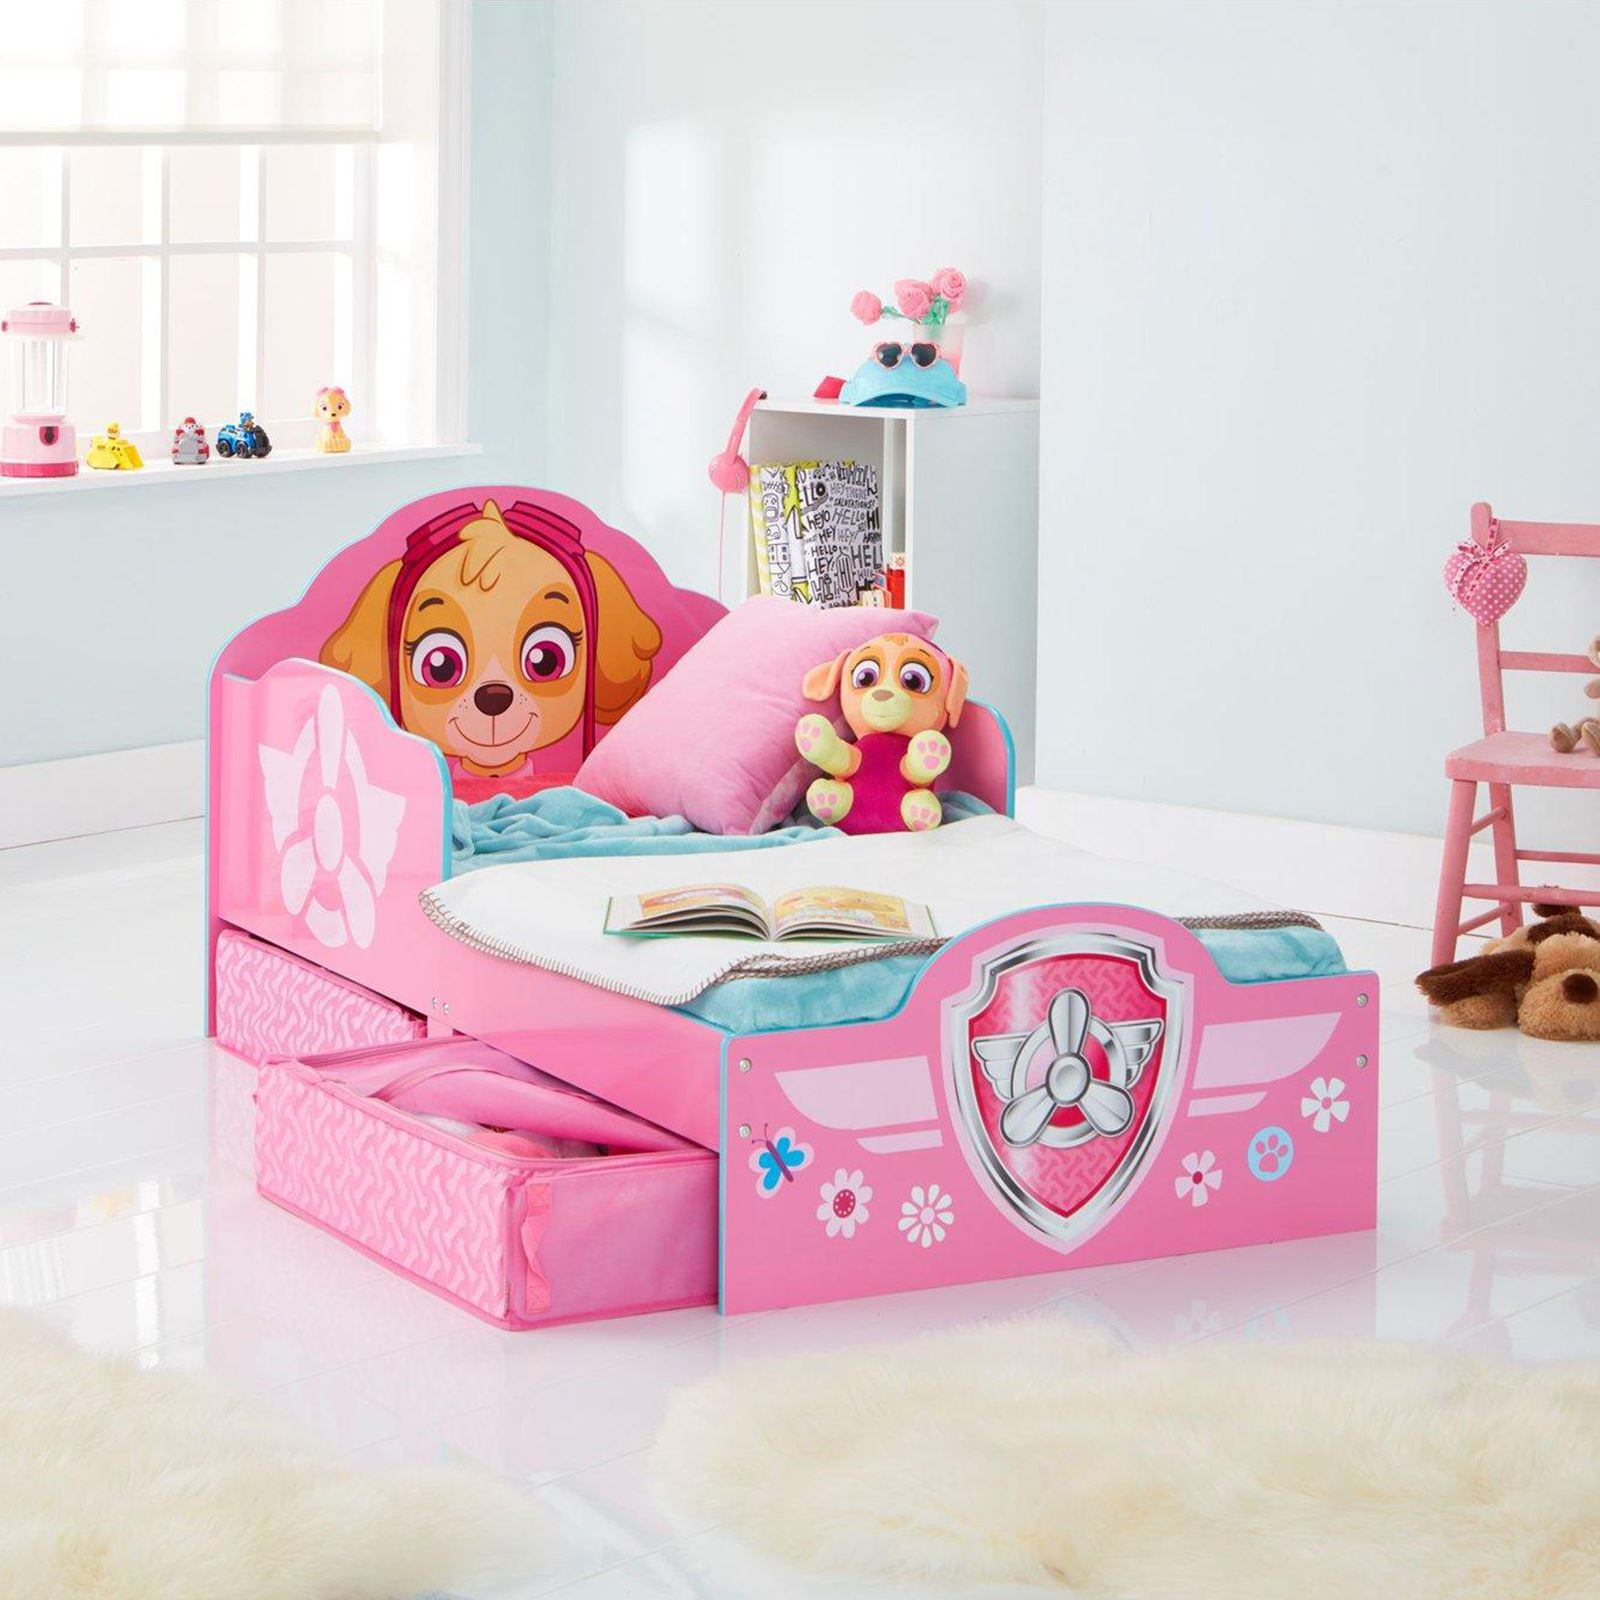 paw patrol skye toddler bed with underbed storage girls childrens rh ebay co uk bed girl baby bed girl and boy